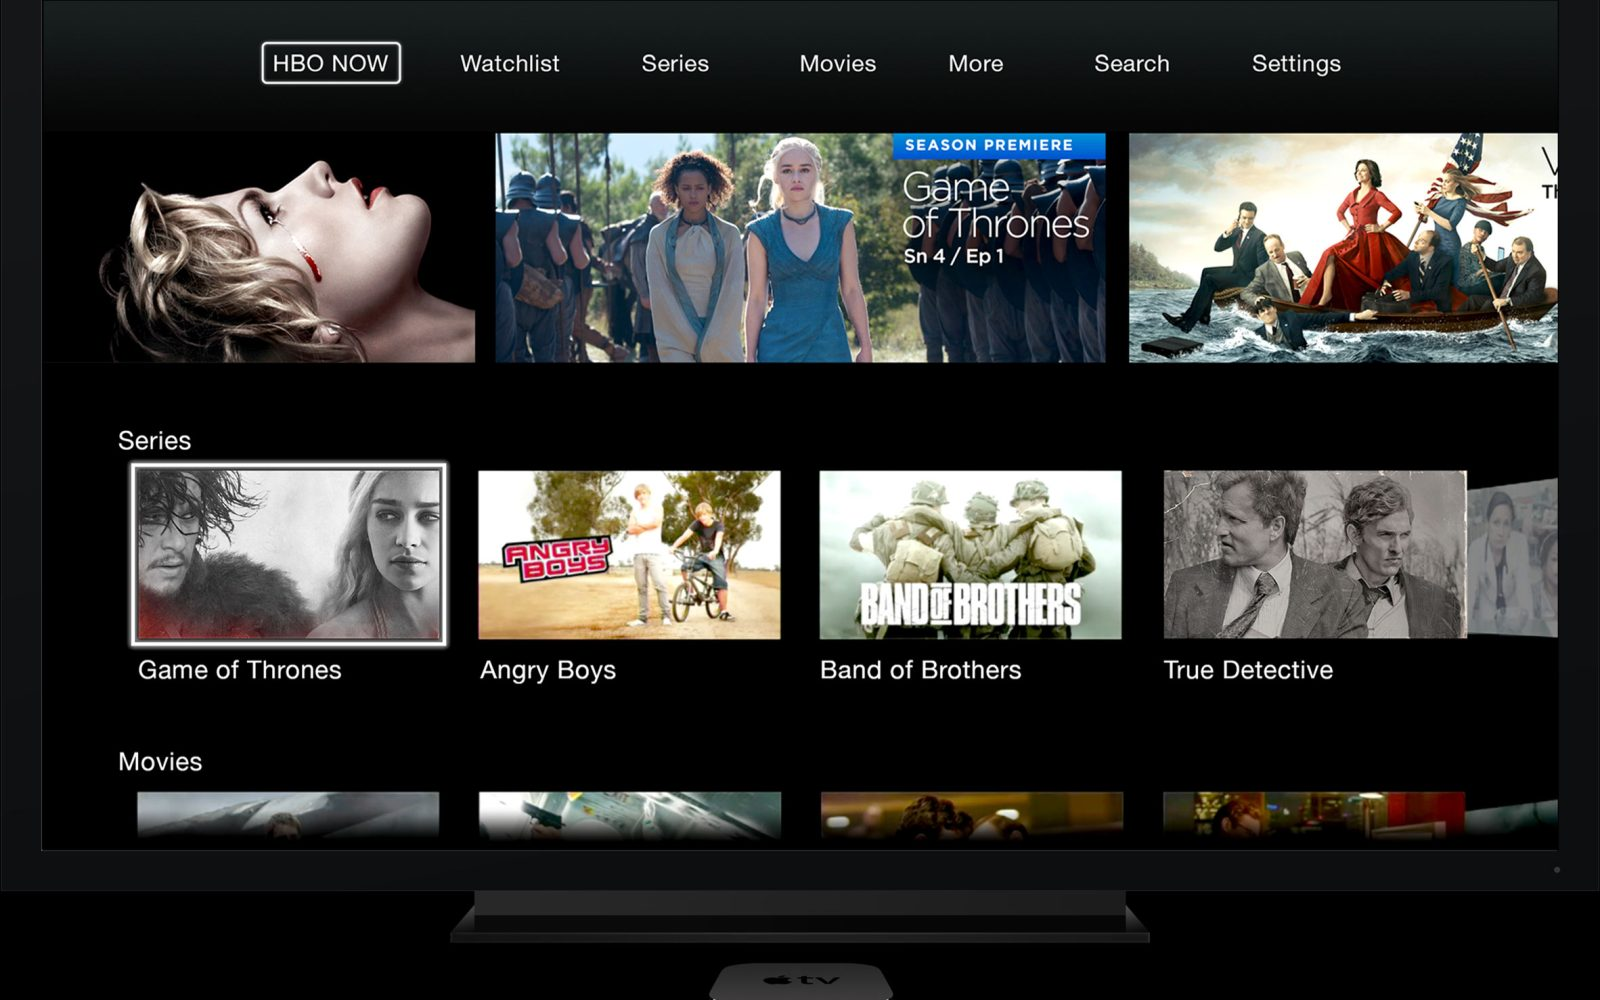 HBO NOW standalone streaming service debuts on Apple TV, iPhone